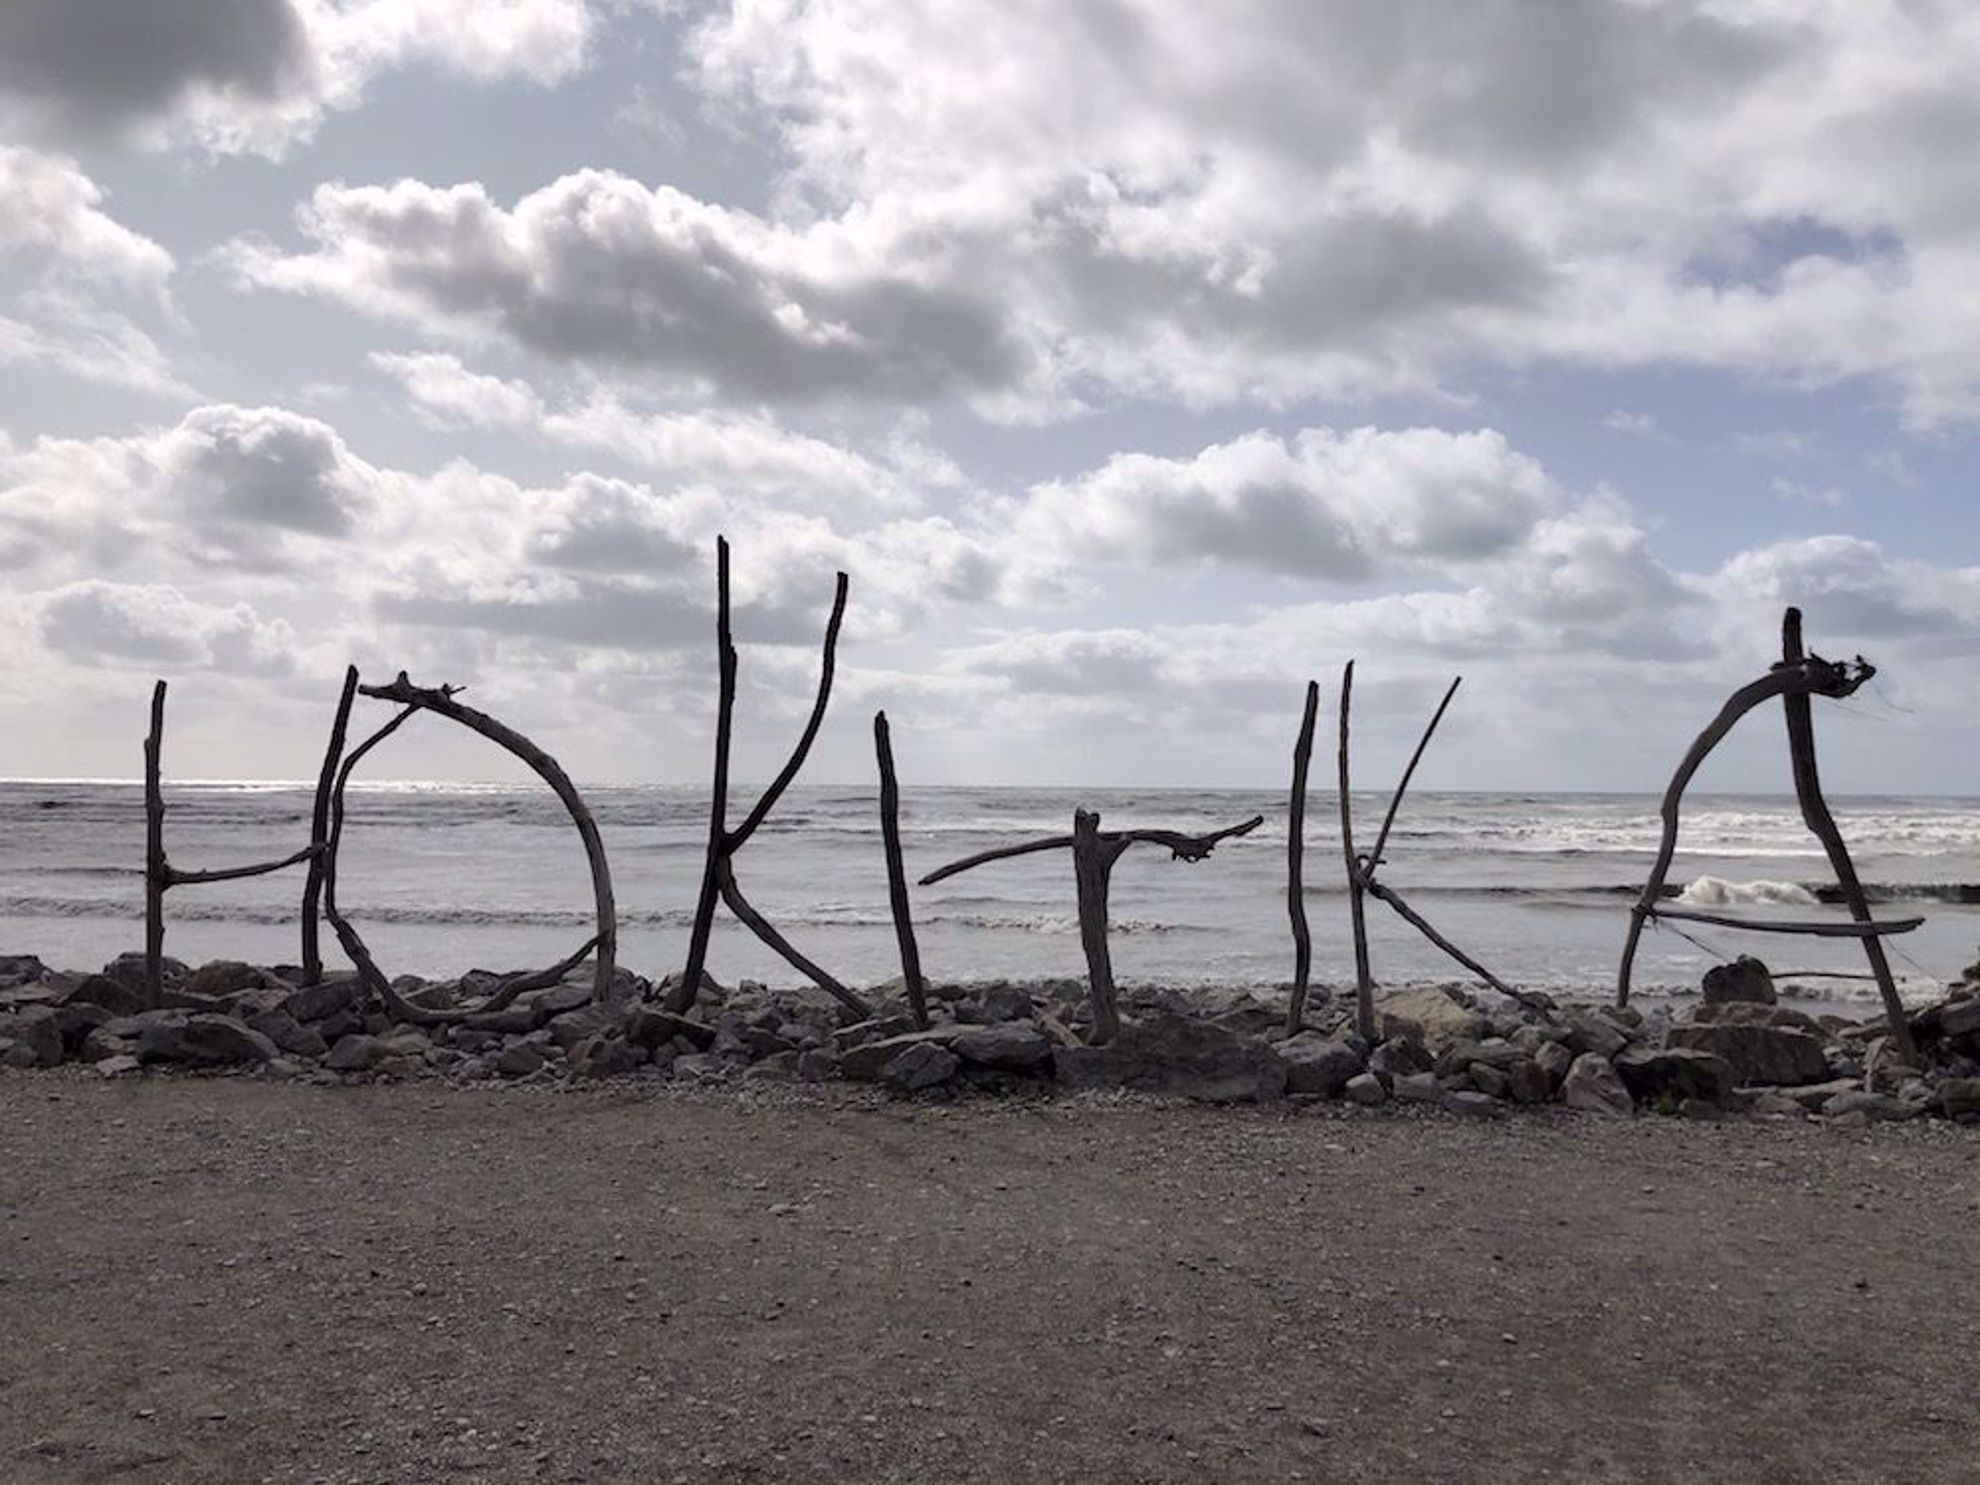 Beach art in Hokitika, New Zealand